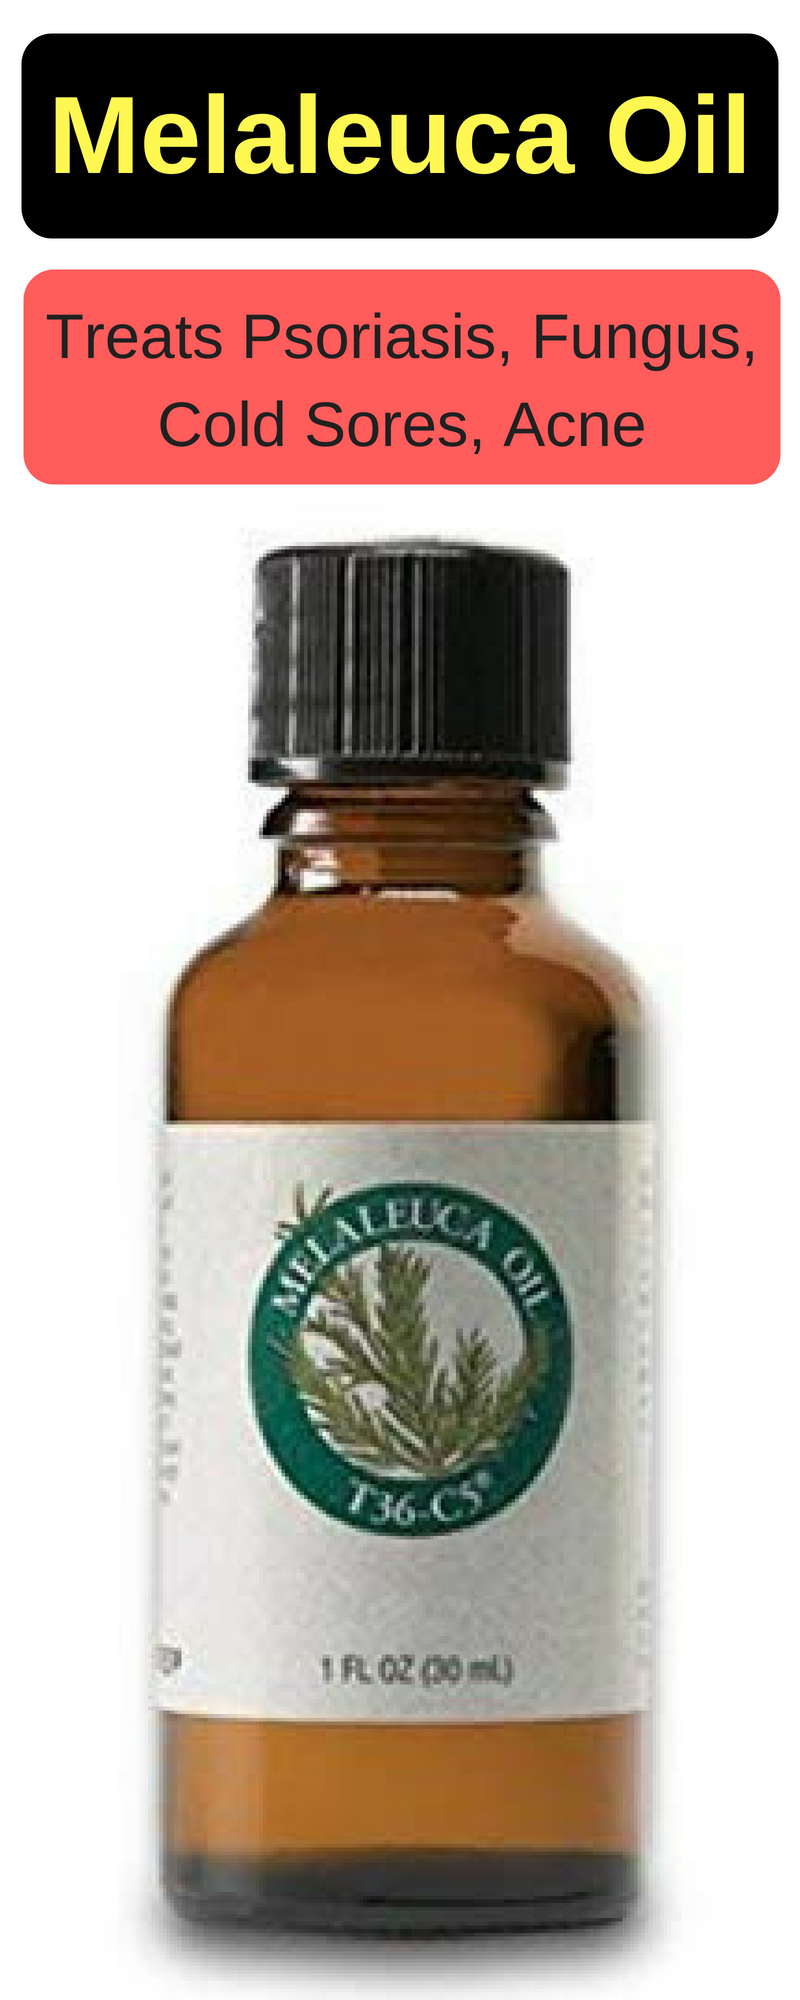 Melaleuca Oil Commonly Known As Tea Tree Oil Is An Essential Oil Obtained From The Leaves Of Melaleuca Alter Melaleuca Oil Tea Tree Oil For Acne Tea Tree Oil